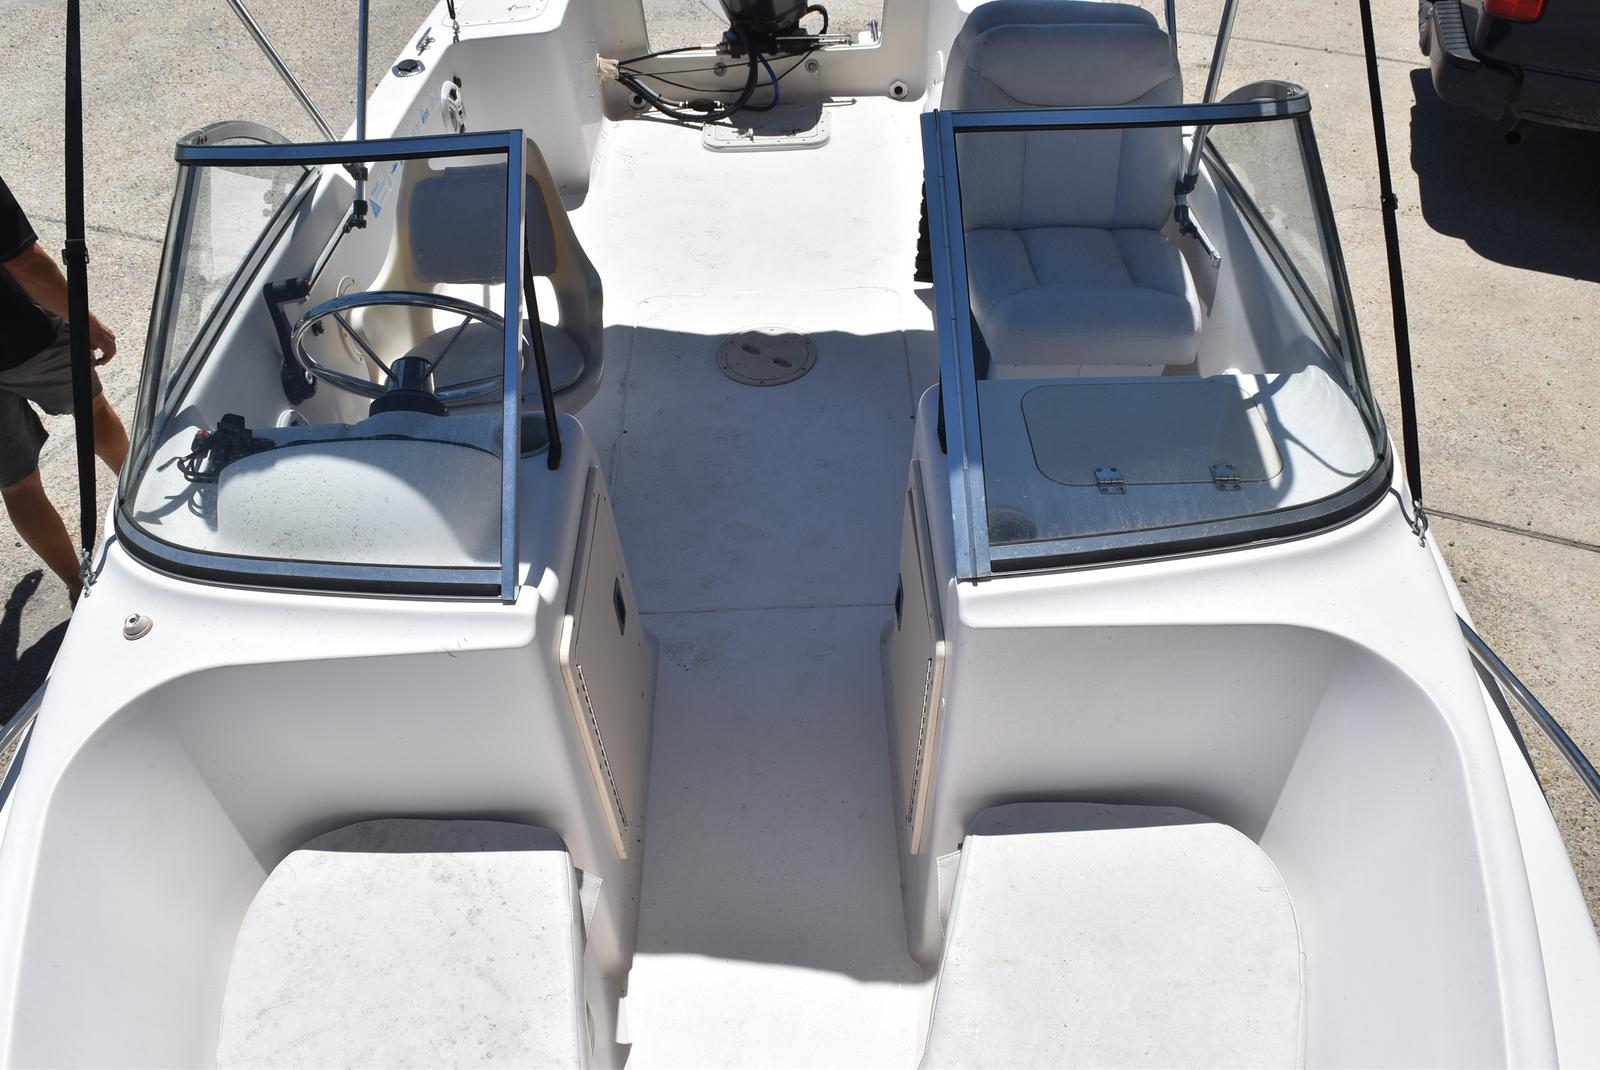 1998 Sea Hunt boat for sale, model of the boat is 172 ESCAPE & Image # 16 of 20